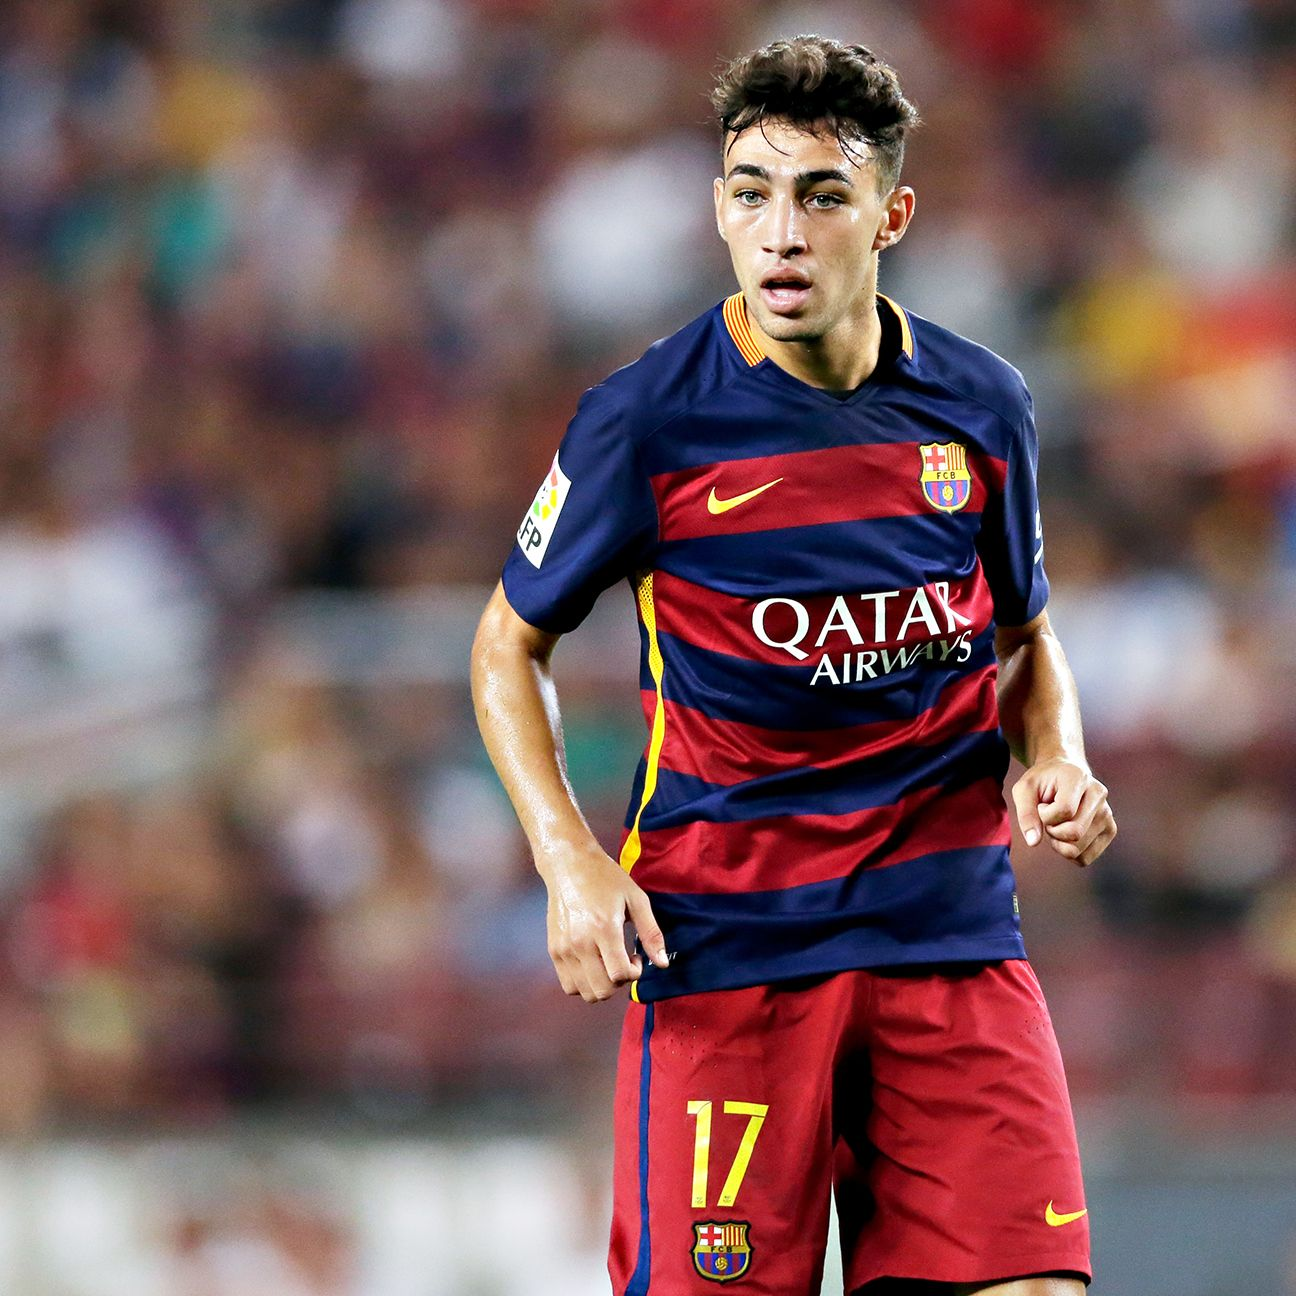 After featuring for Barcelona early in 2014-15, Munir's first team appearances have been few and far between.